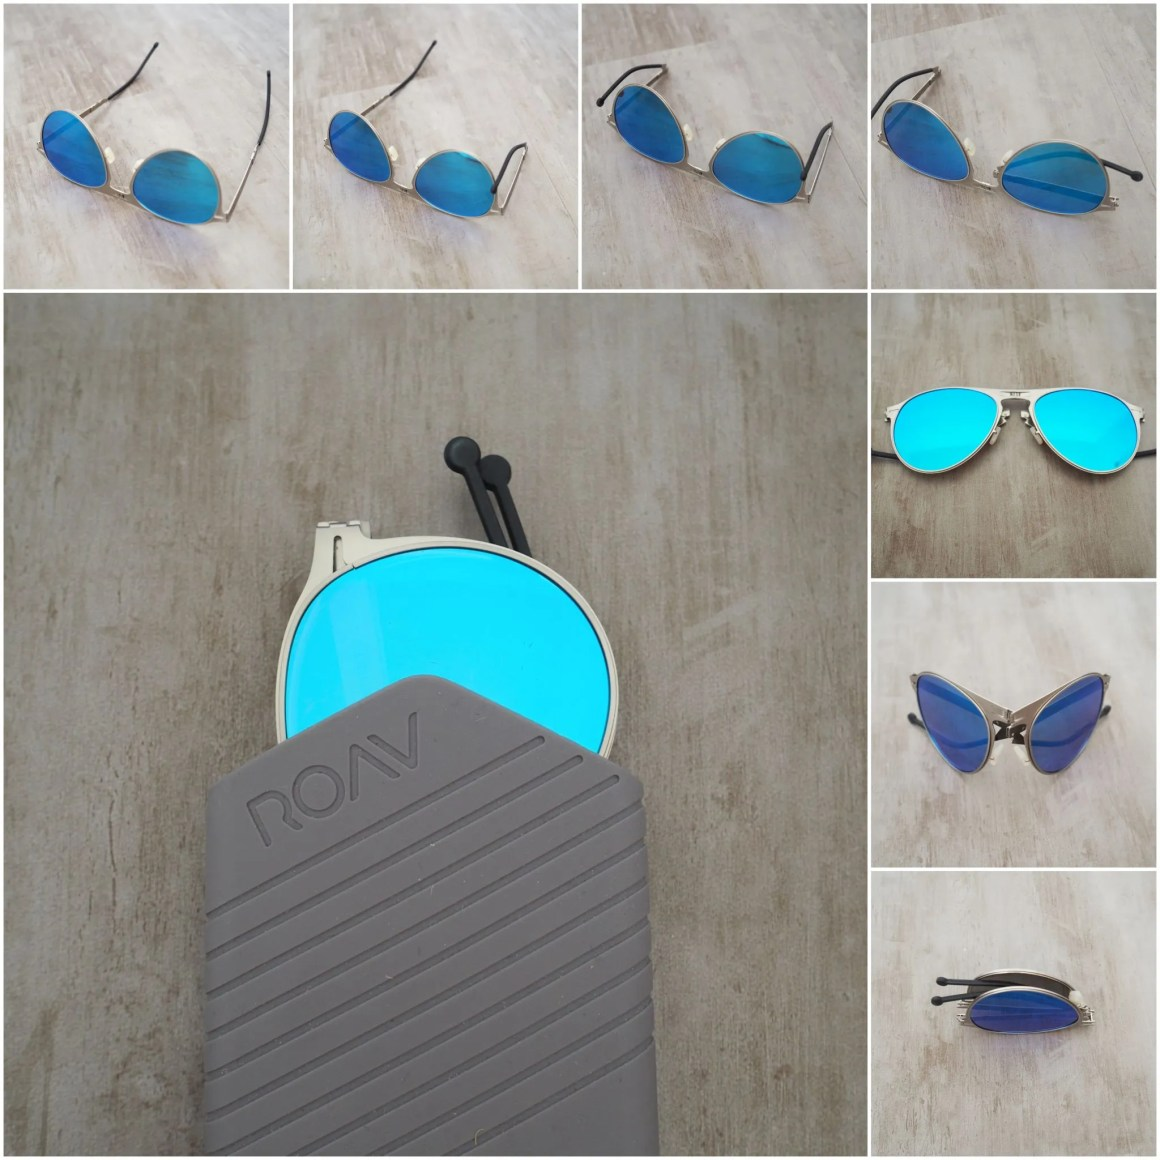 ROAV world's slimmest folding sunglasses